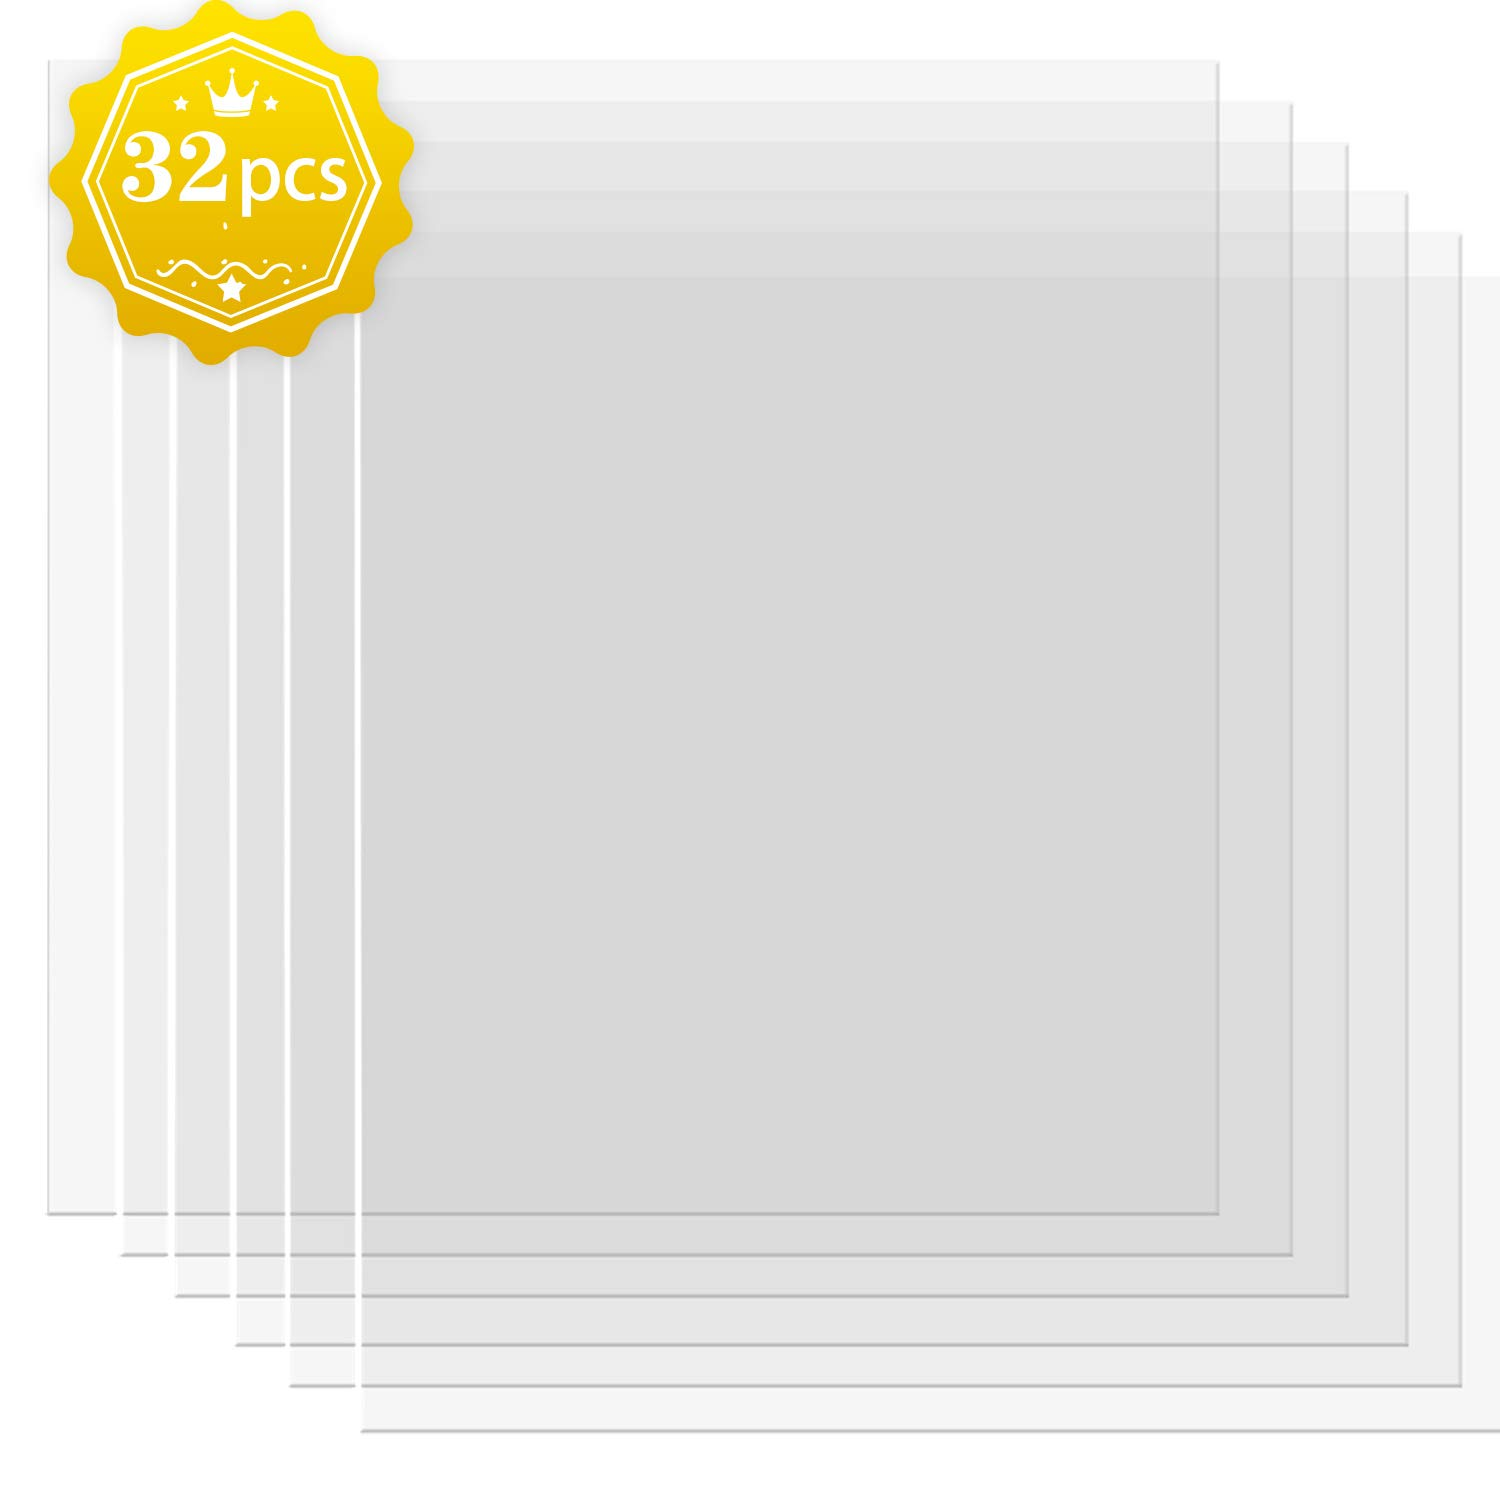 32 Pack 4 mil Blank Stencil Material Mylar Blank Sheets for Stenciling Airbrush Painting Tracing Fabric Templates,12 x 12 Inch by BYMORE